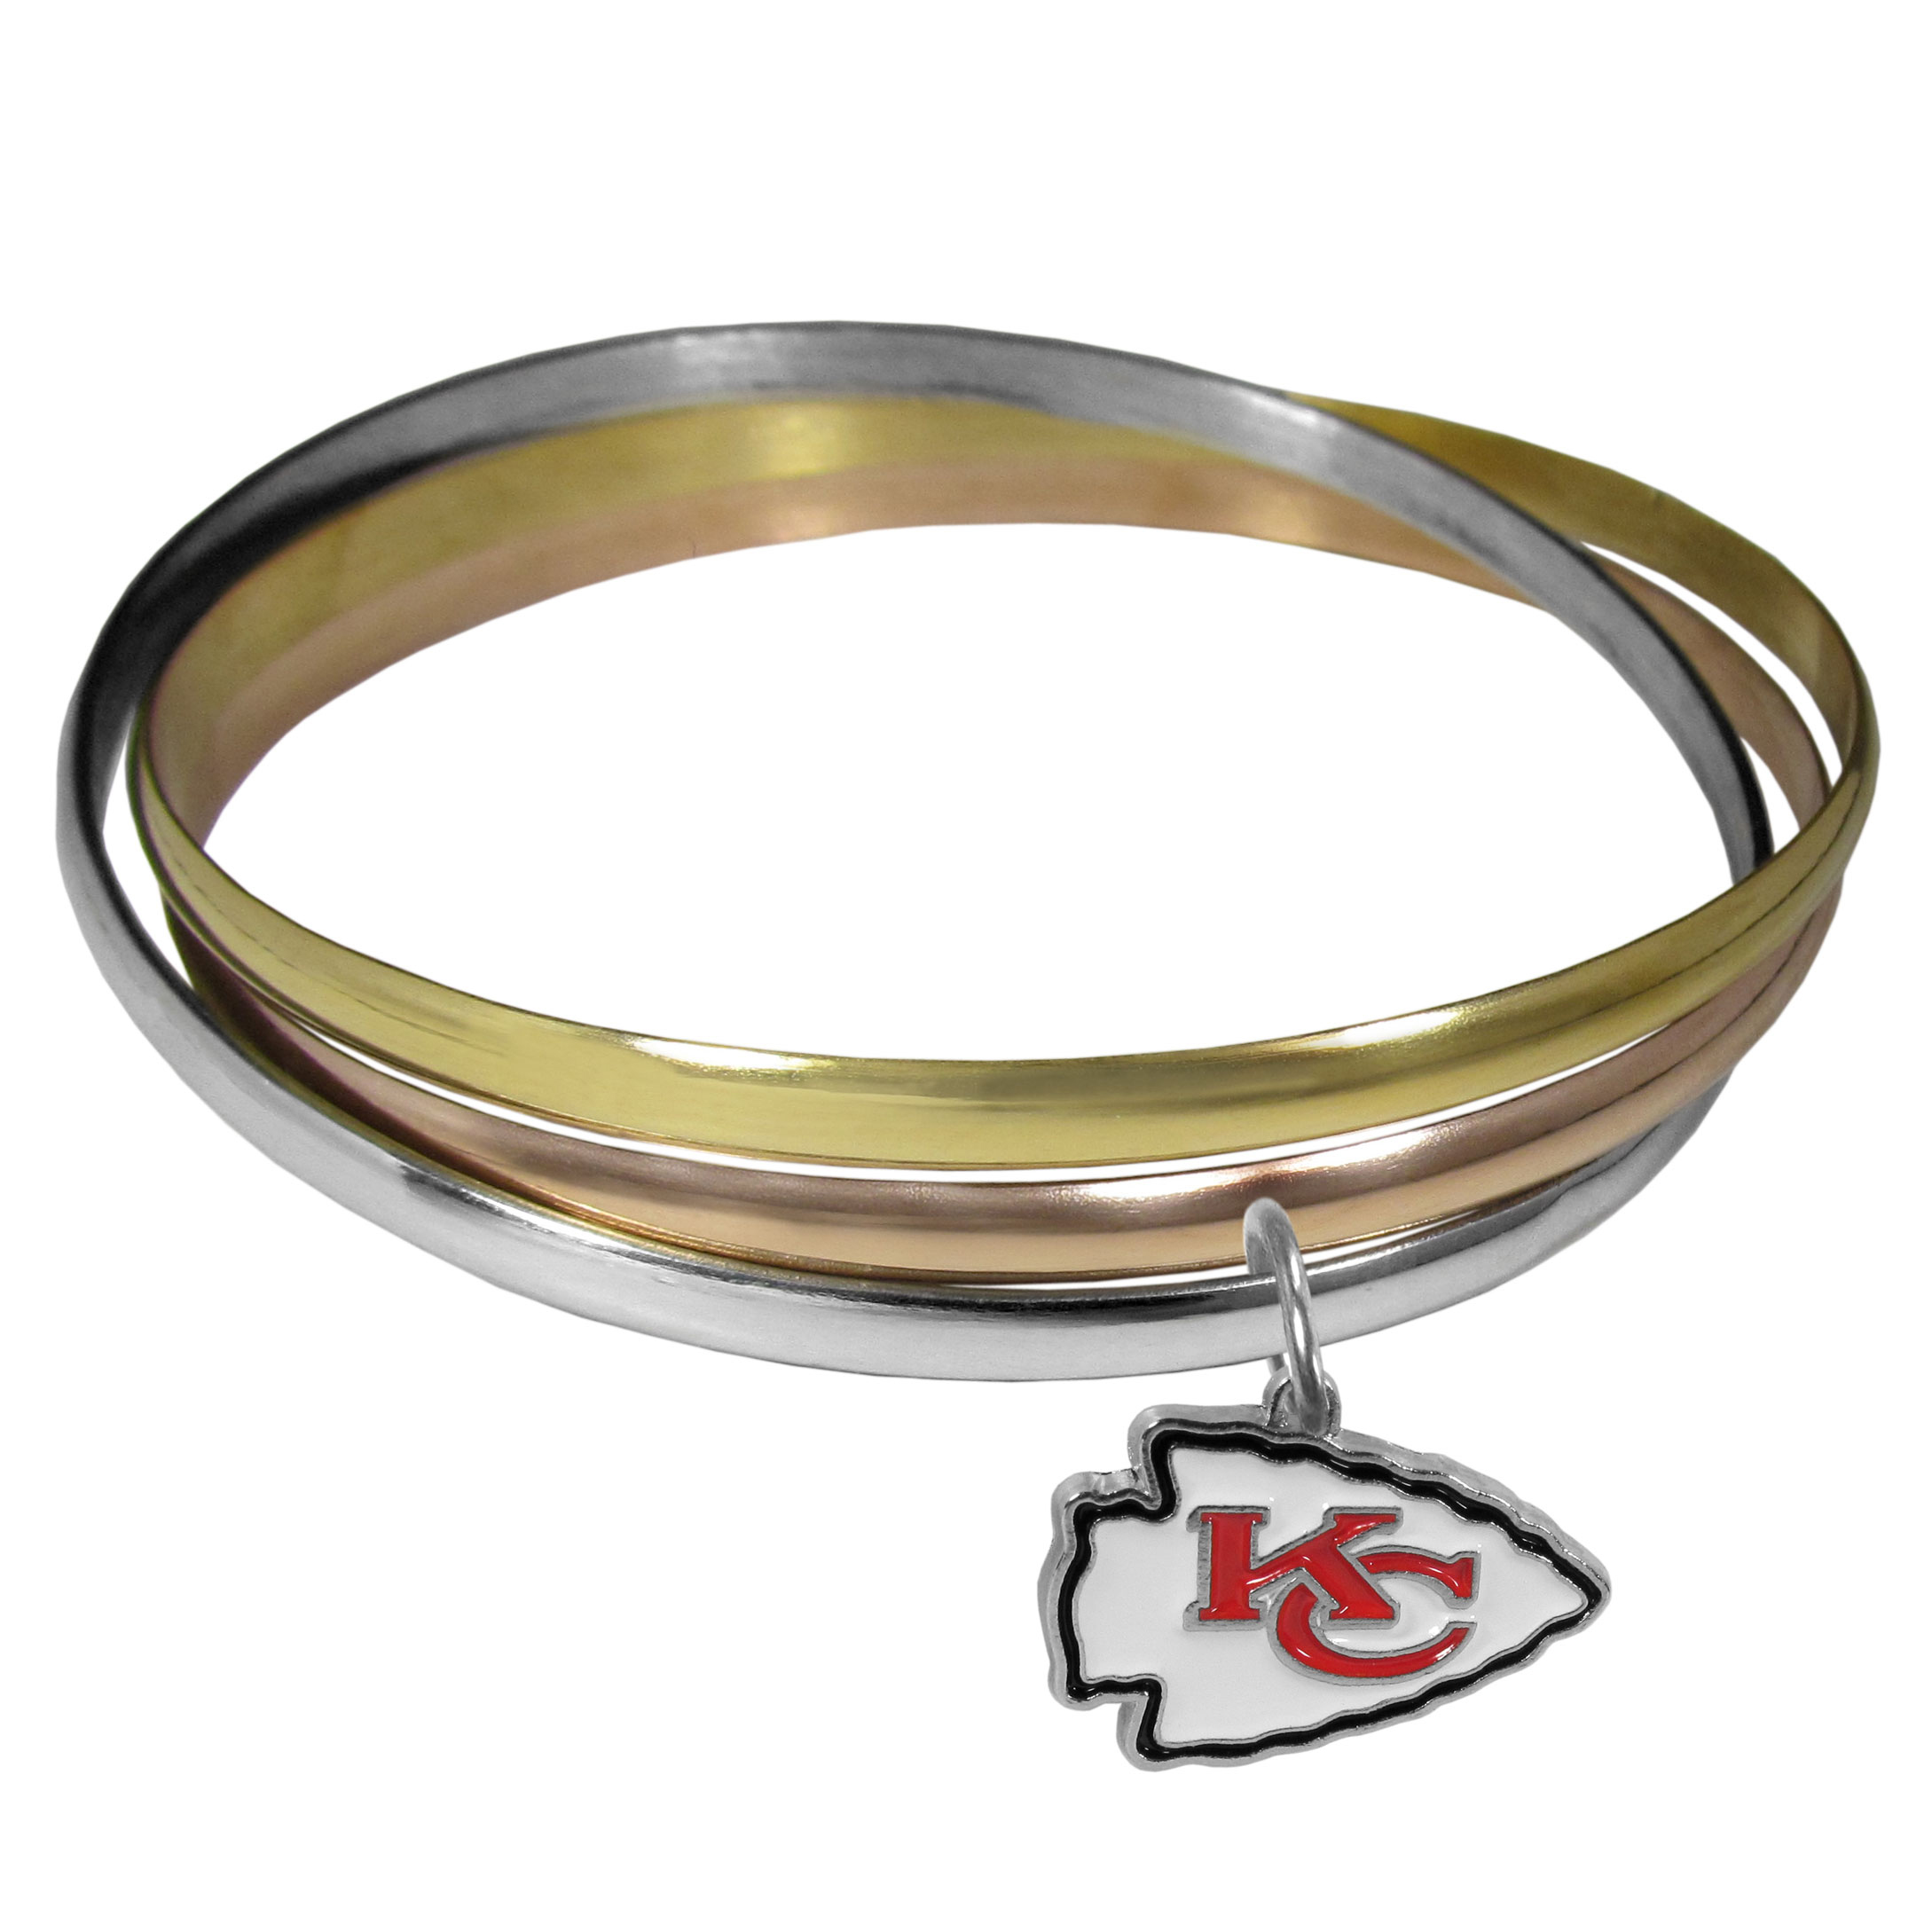 Kansas City Chiefs Tri-color Bangle Bracelet - These beautiful bangles come in a interlocking style and feature a fully cast Kansas City Chiefs charm with enameled team colors. The bracelet has a silver toned bangle, gold tone bangle and brass toned bangle.